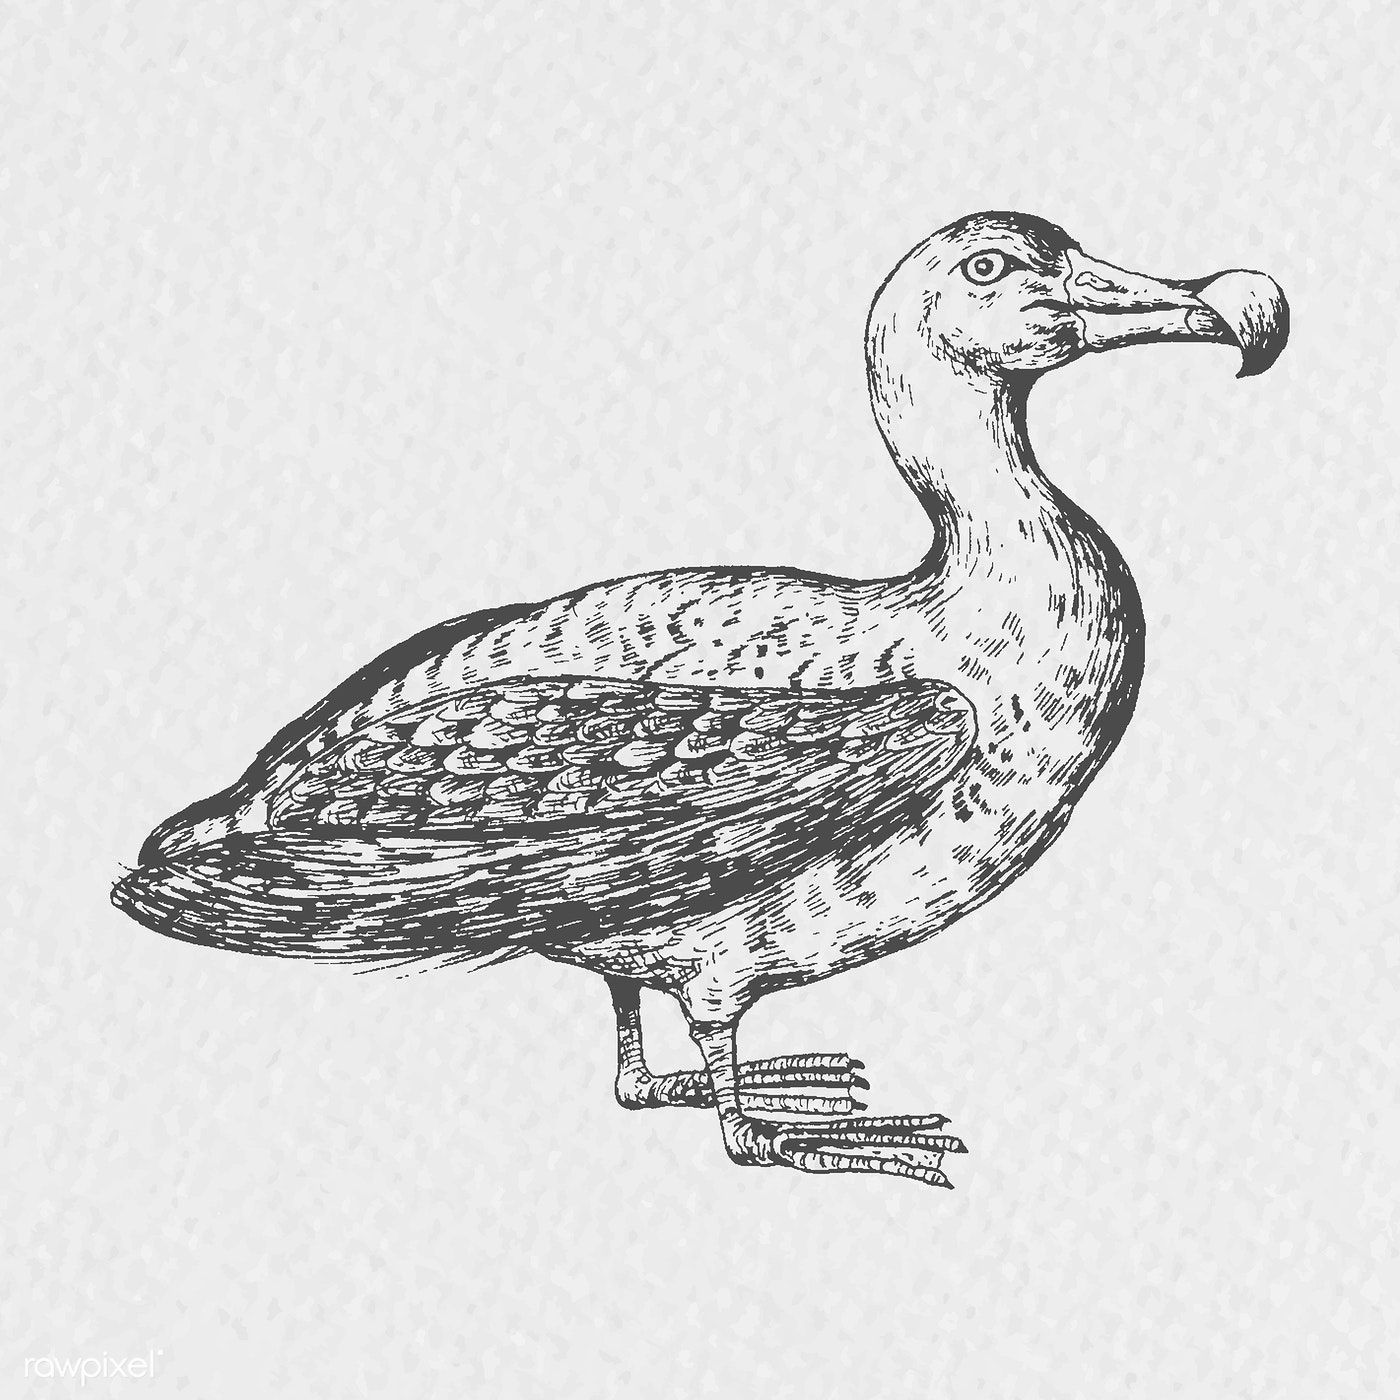 Download premium vector of Hand drawn albatross bird